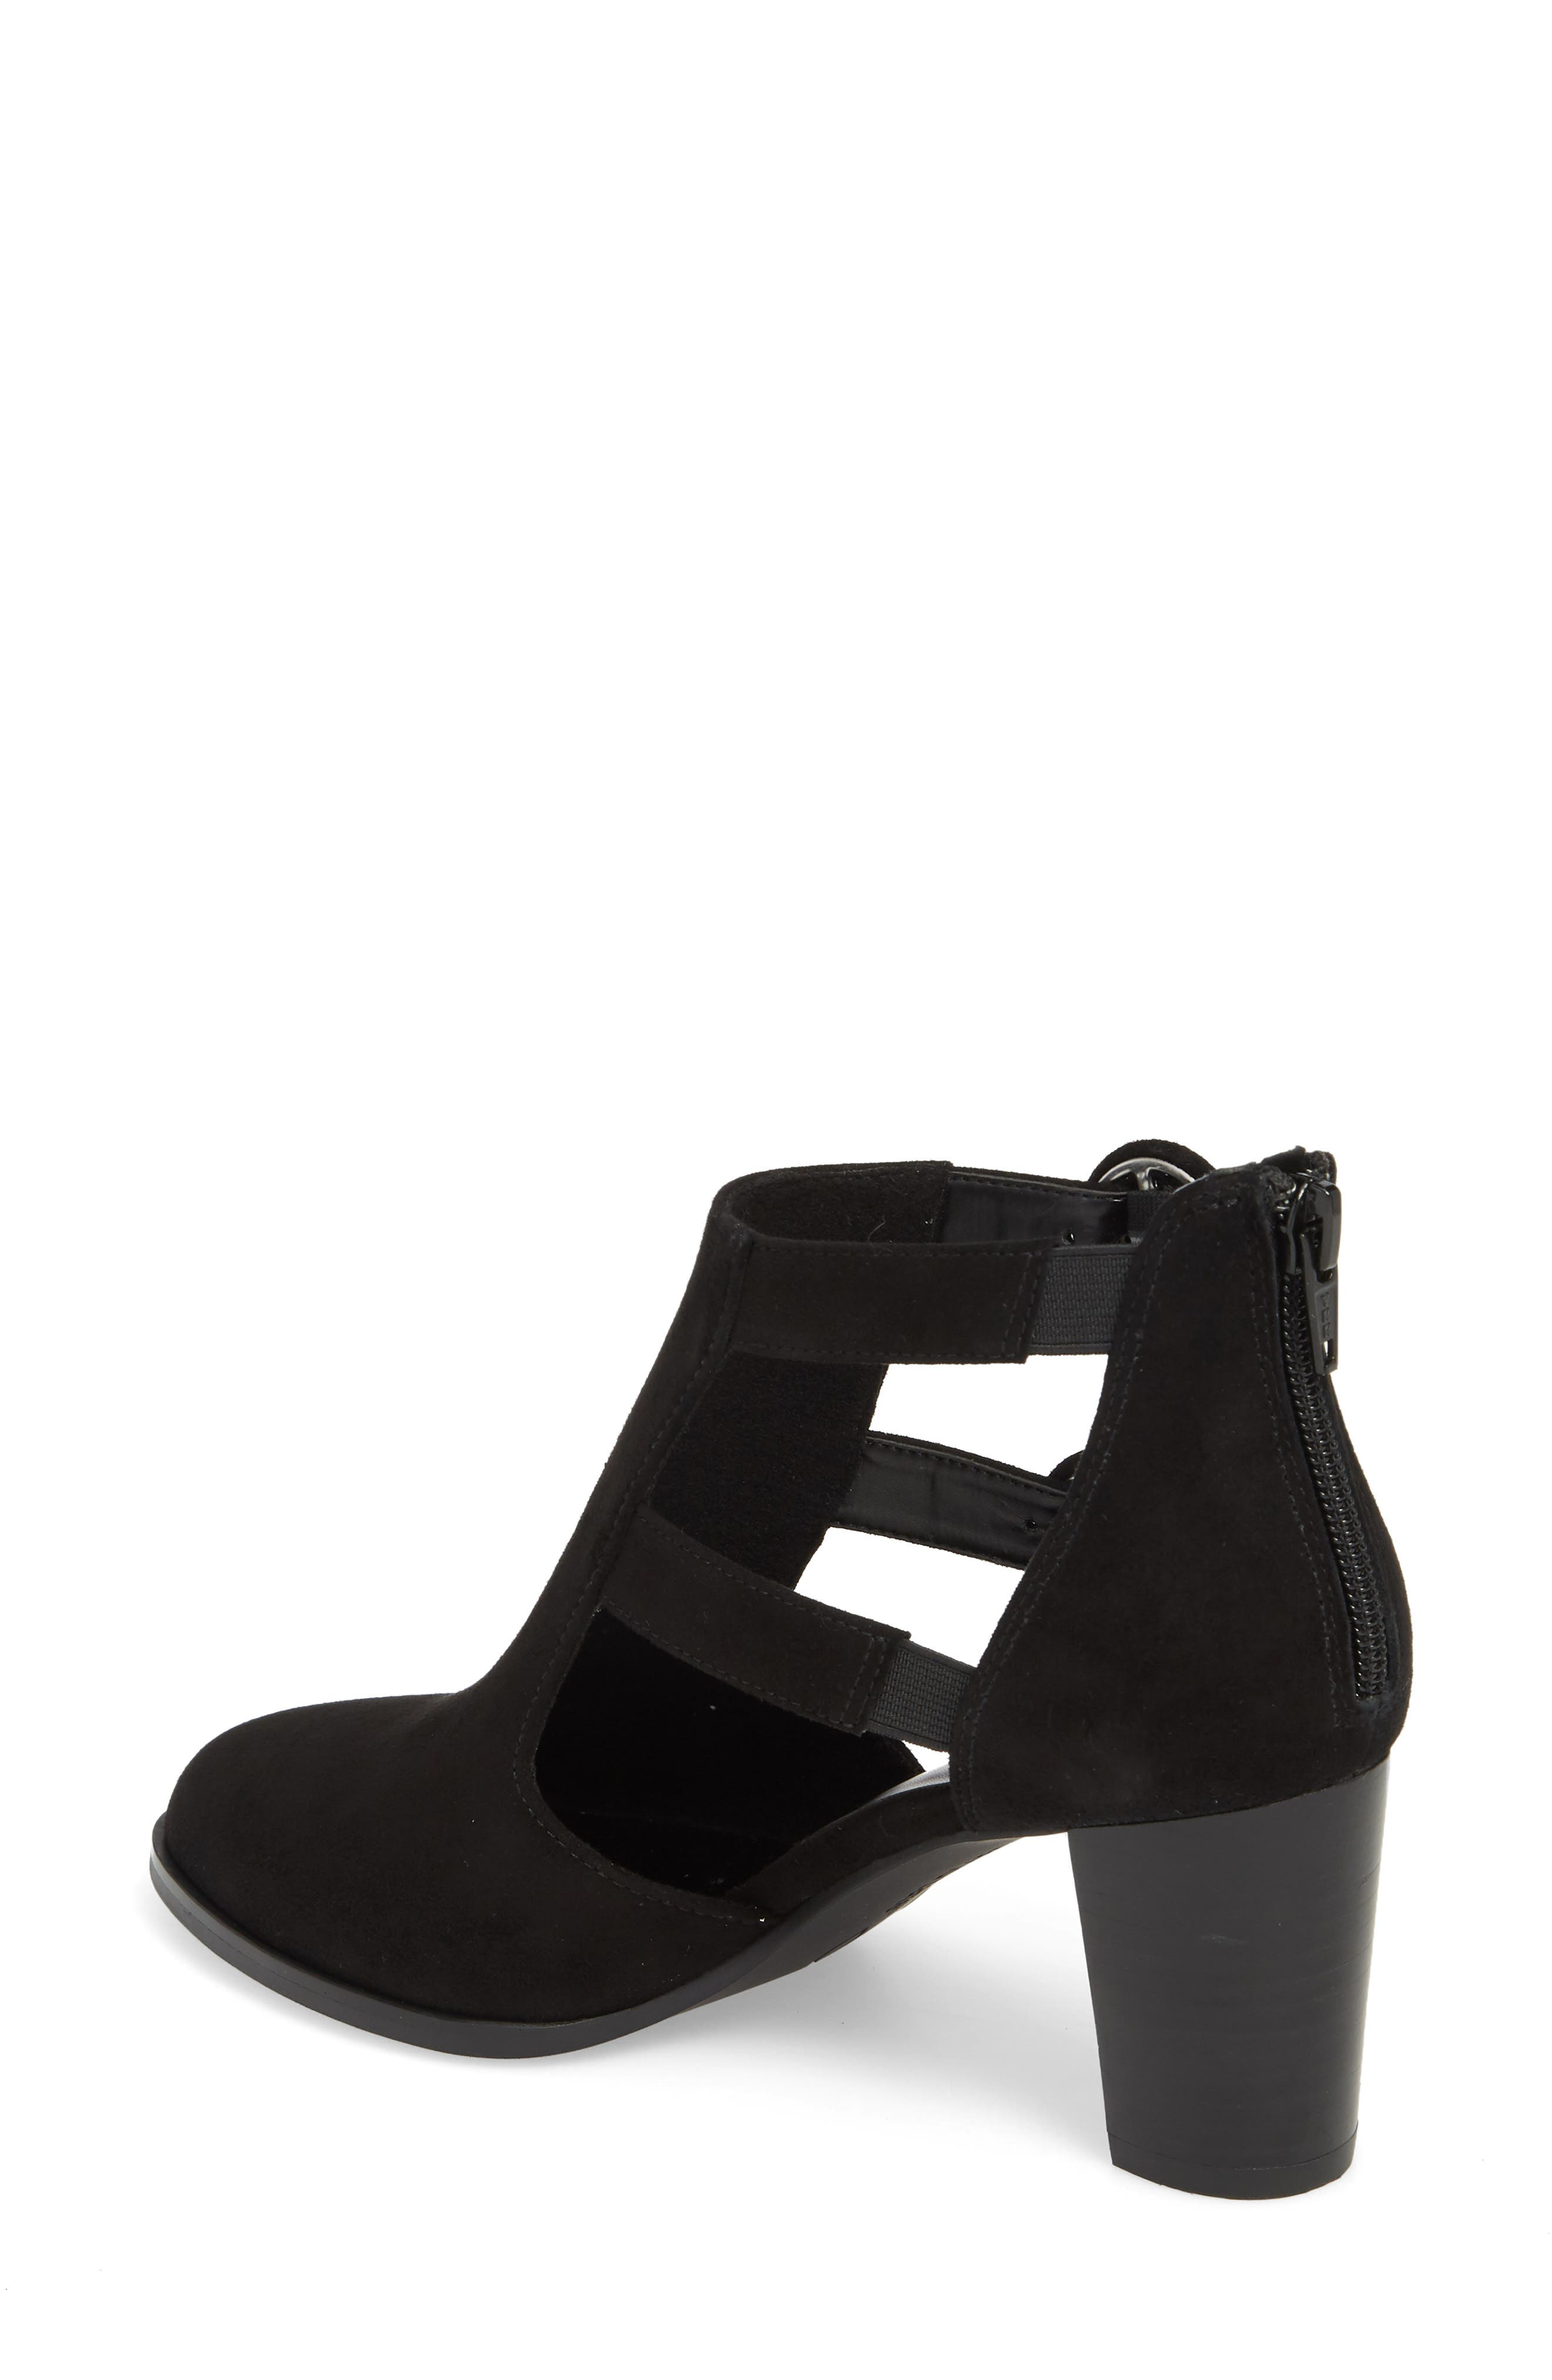 DAVID TATE, Exotic Caged Bootie, Alternate thumbnail 2, color, BLACK SUEDE